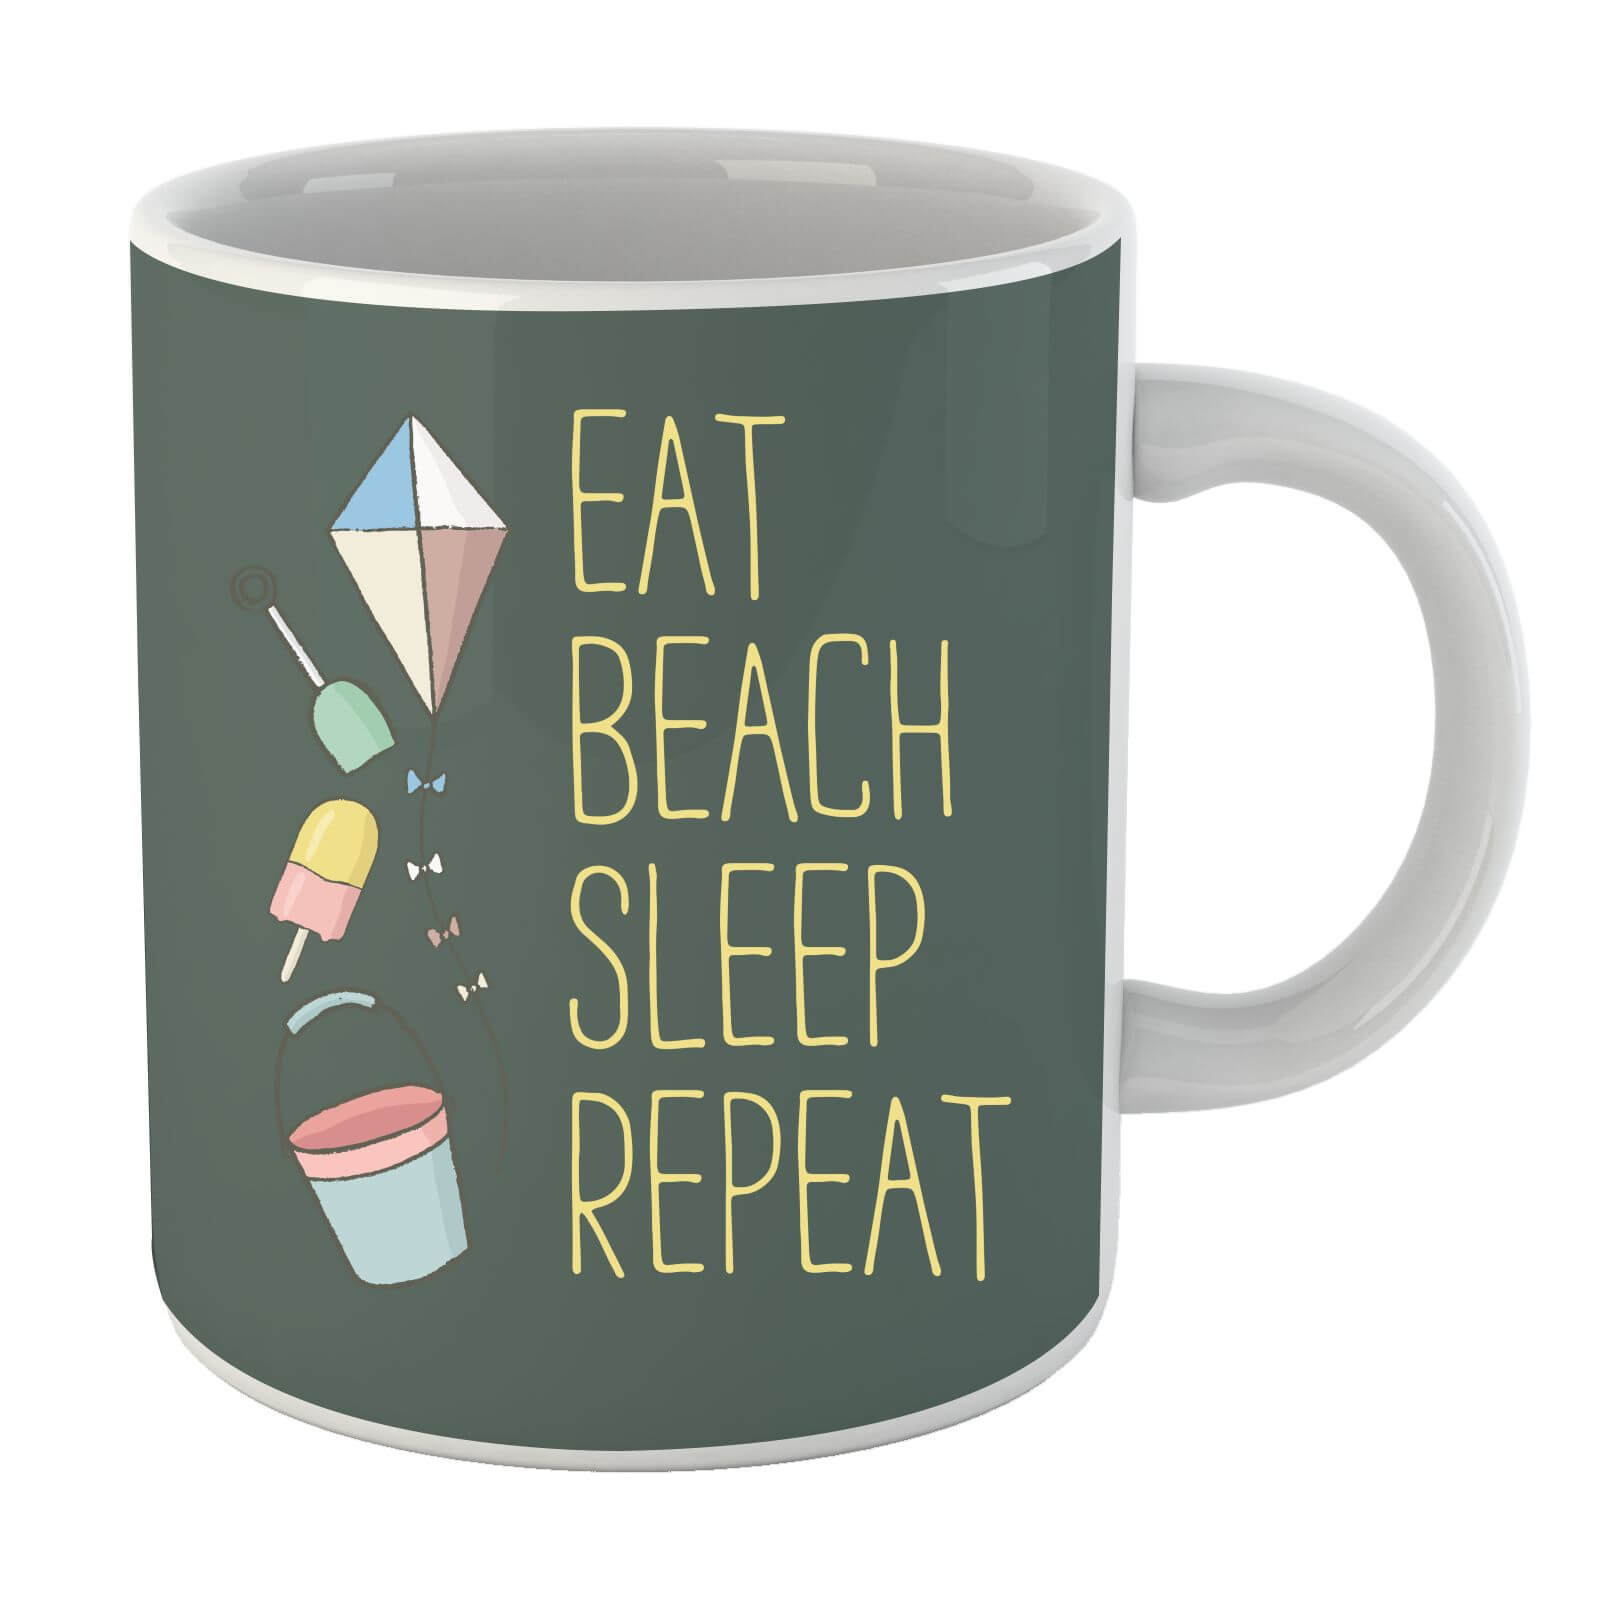 Eat Beach Sleep Repeat Mug